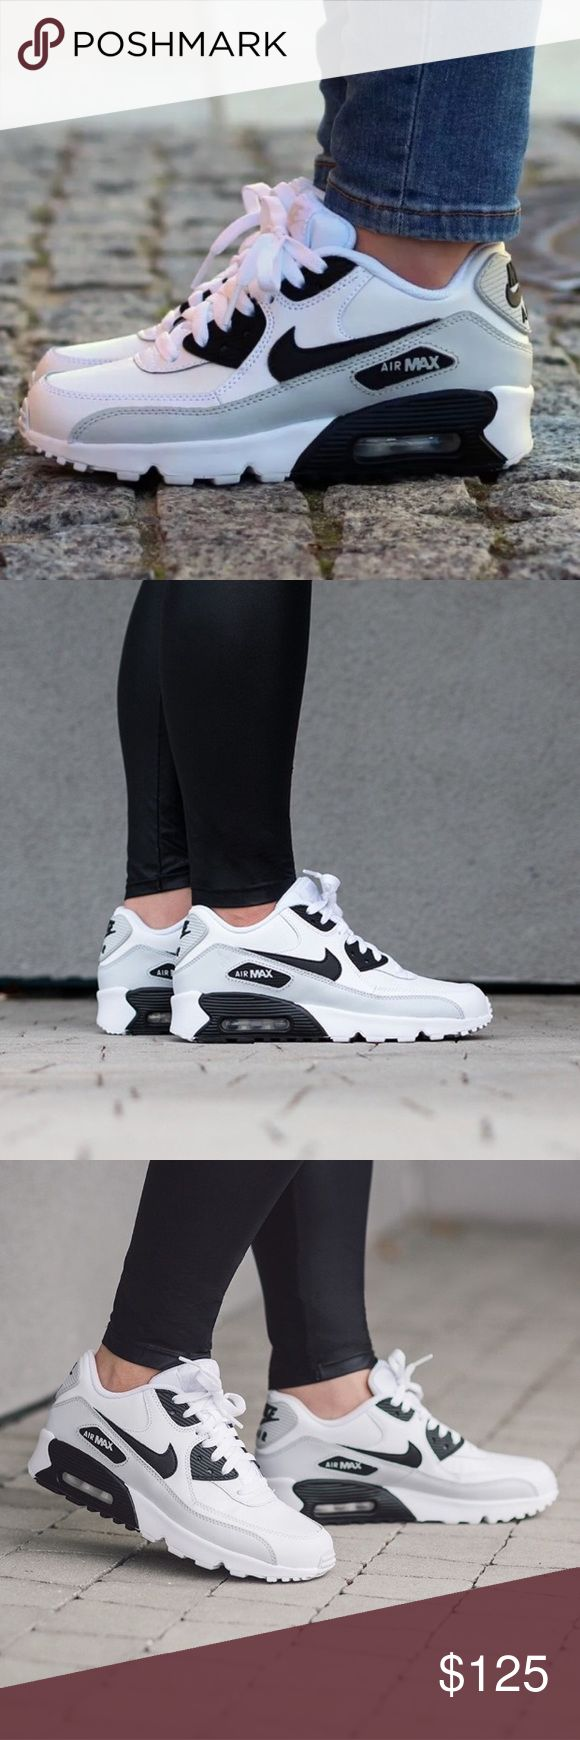 NIKE AIR MAX 90 LEATHER WOMENS SIZE 8 WHITE BLACK Brand new without box. Shoes are a size 6.5 youth which is a women's size 8. (Please look at sizing chart) Nike Shoes Sneakers